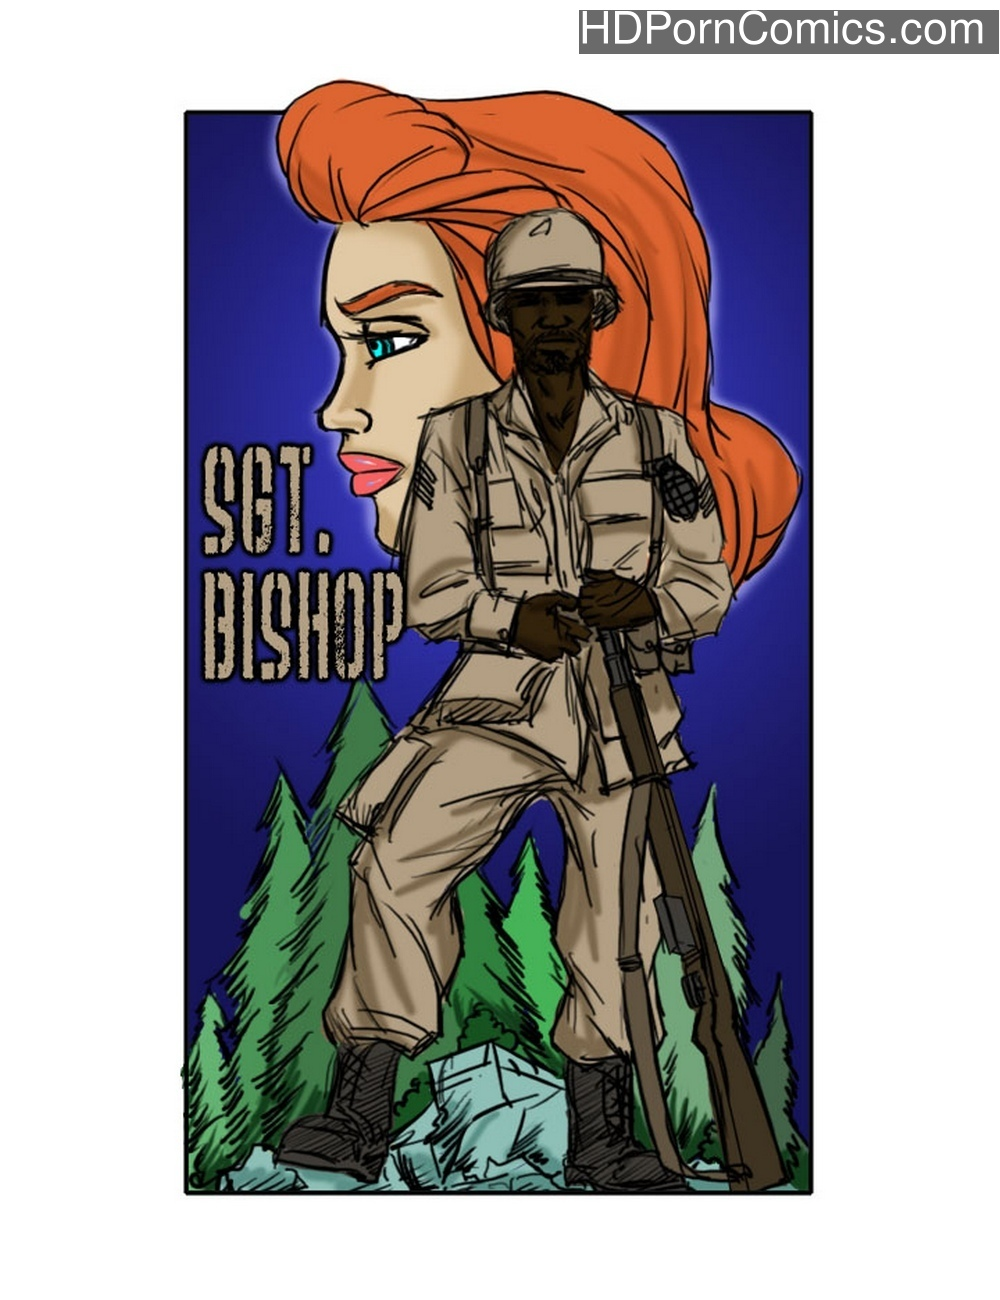 Sgt. Bishop comic porn